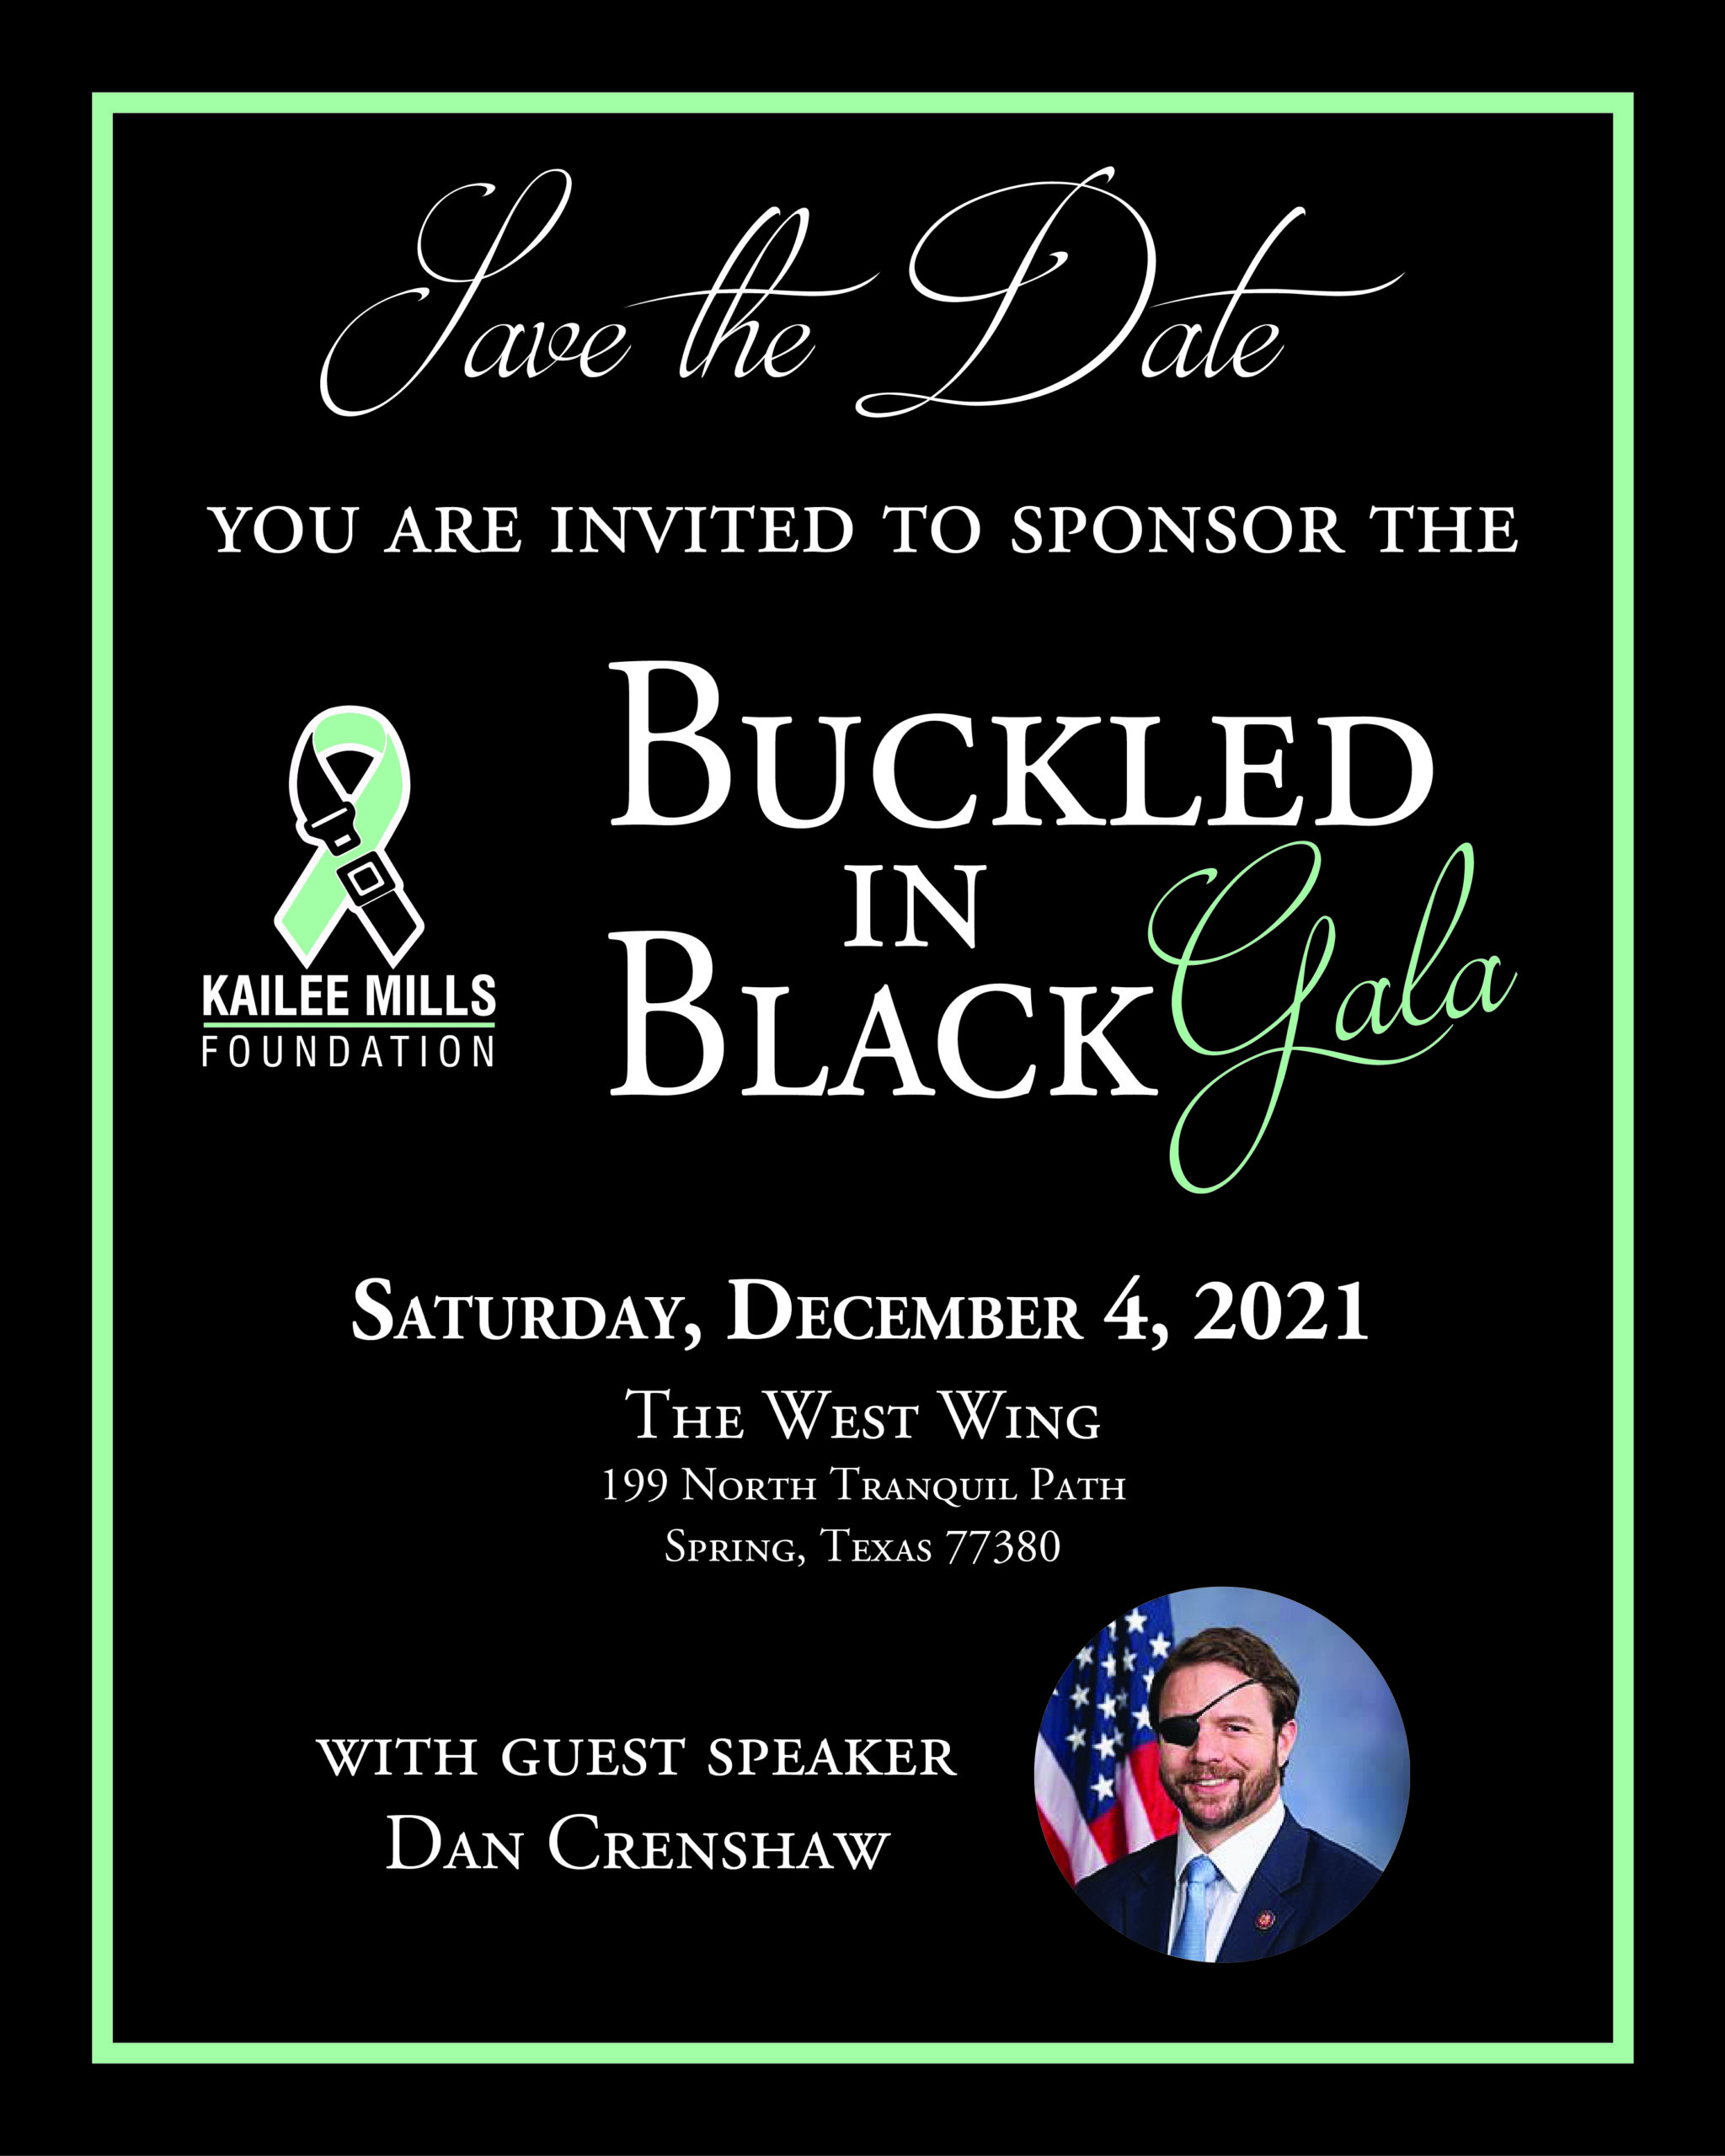 kailee mills foundation's buckled in black gala with guest speaker dan crenshaw